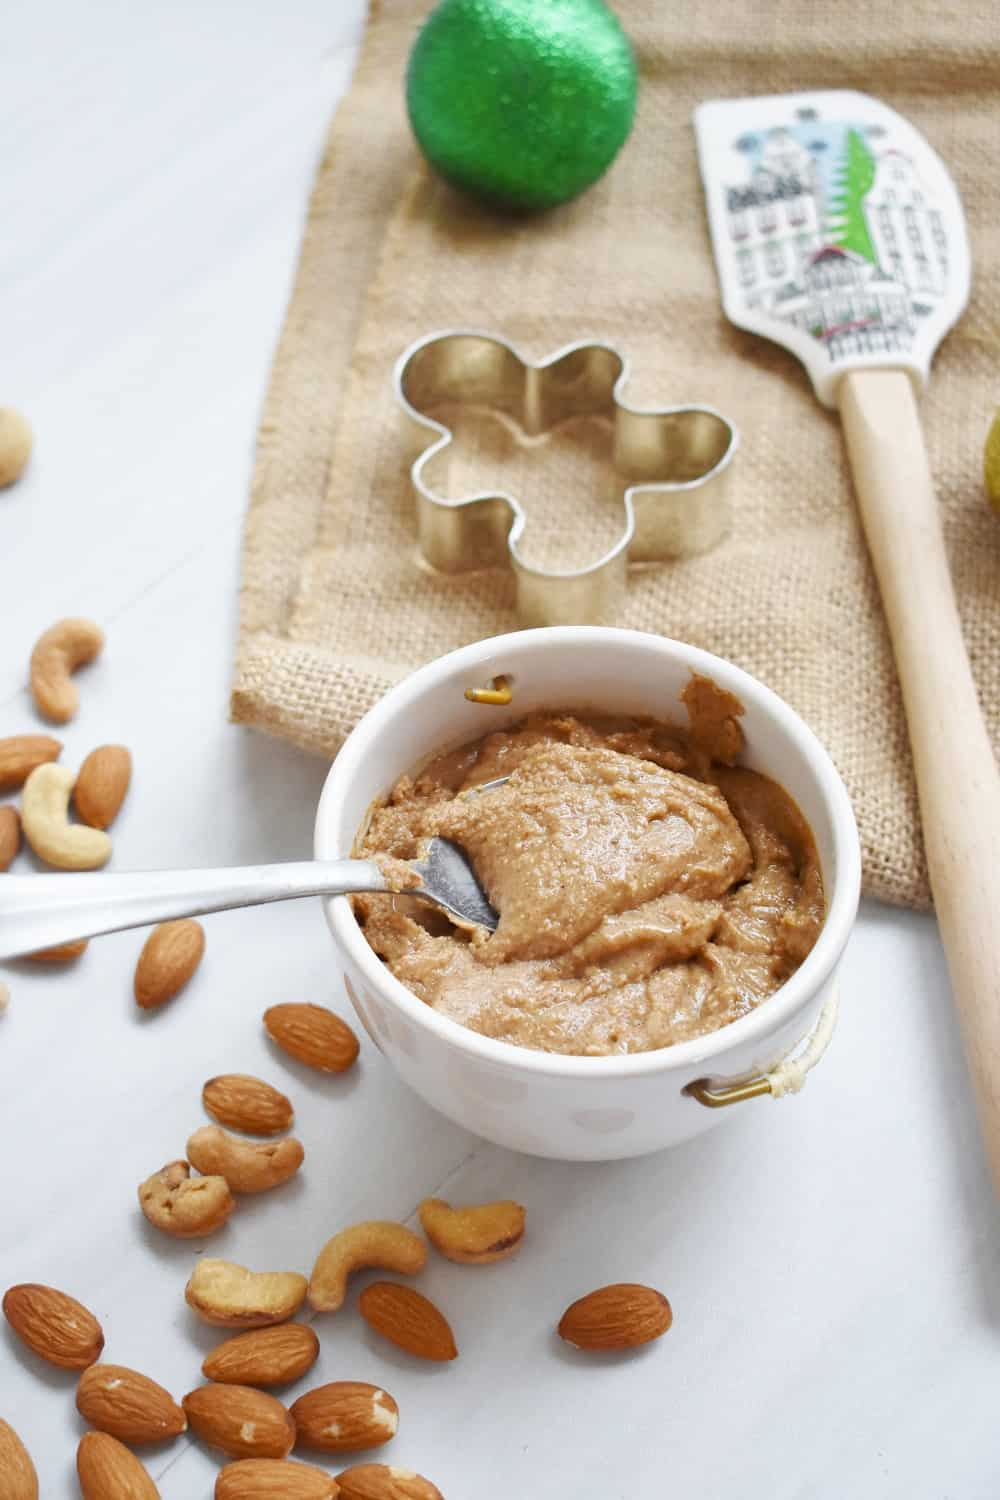 A cup full of homemade gingerbread almond cashew butter next to nuts